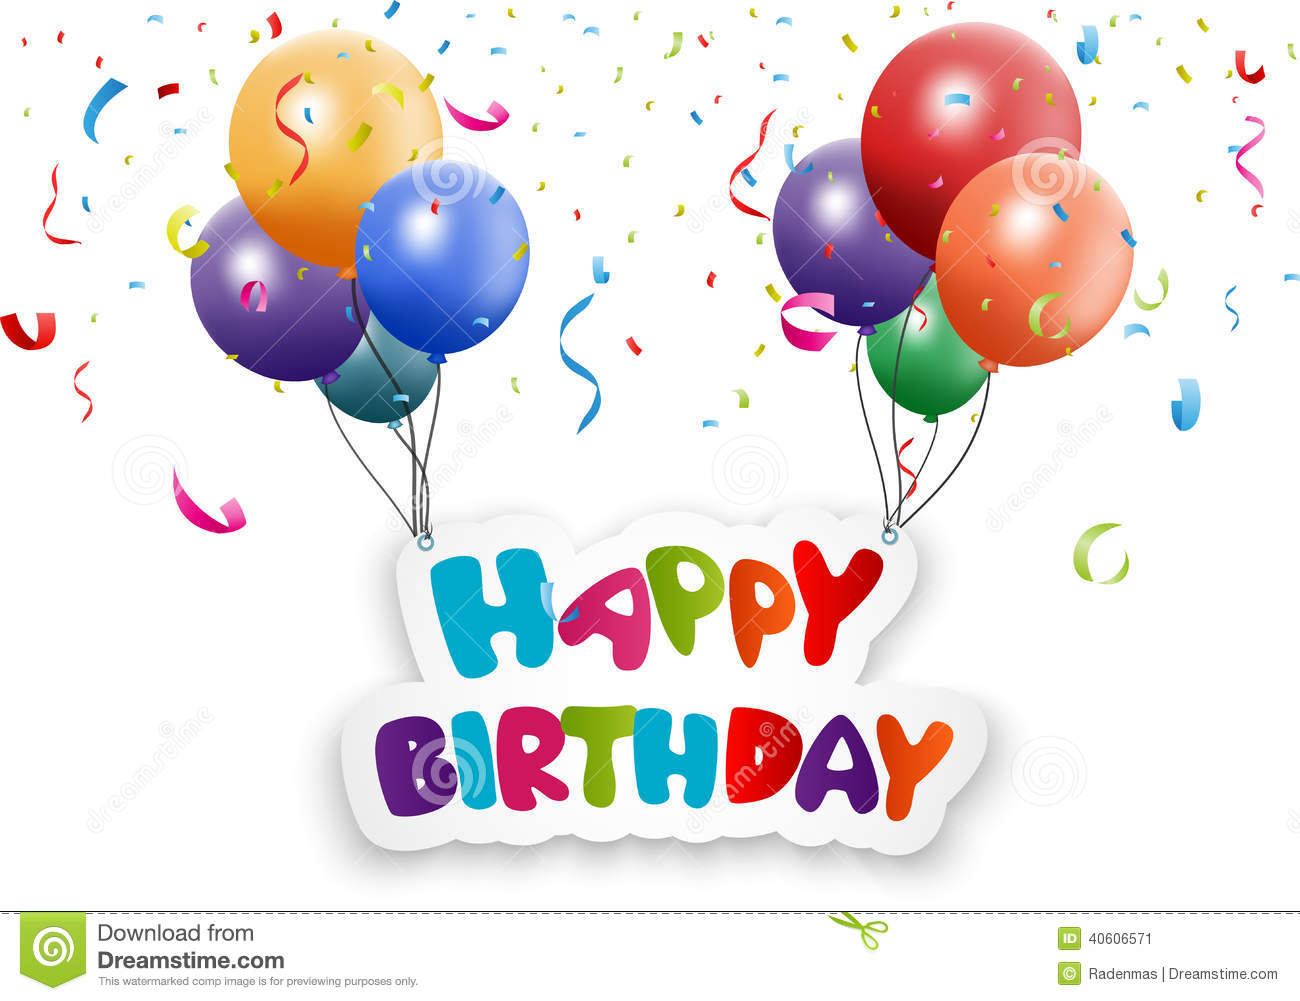 Happy Birthday Card With Balloon And Confetti Vector Image – Birthday Cards Balloons